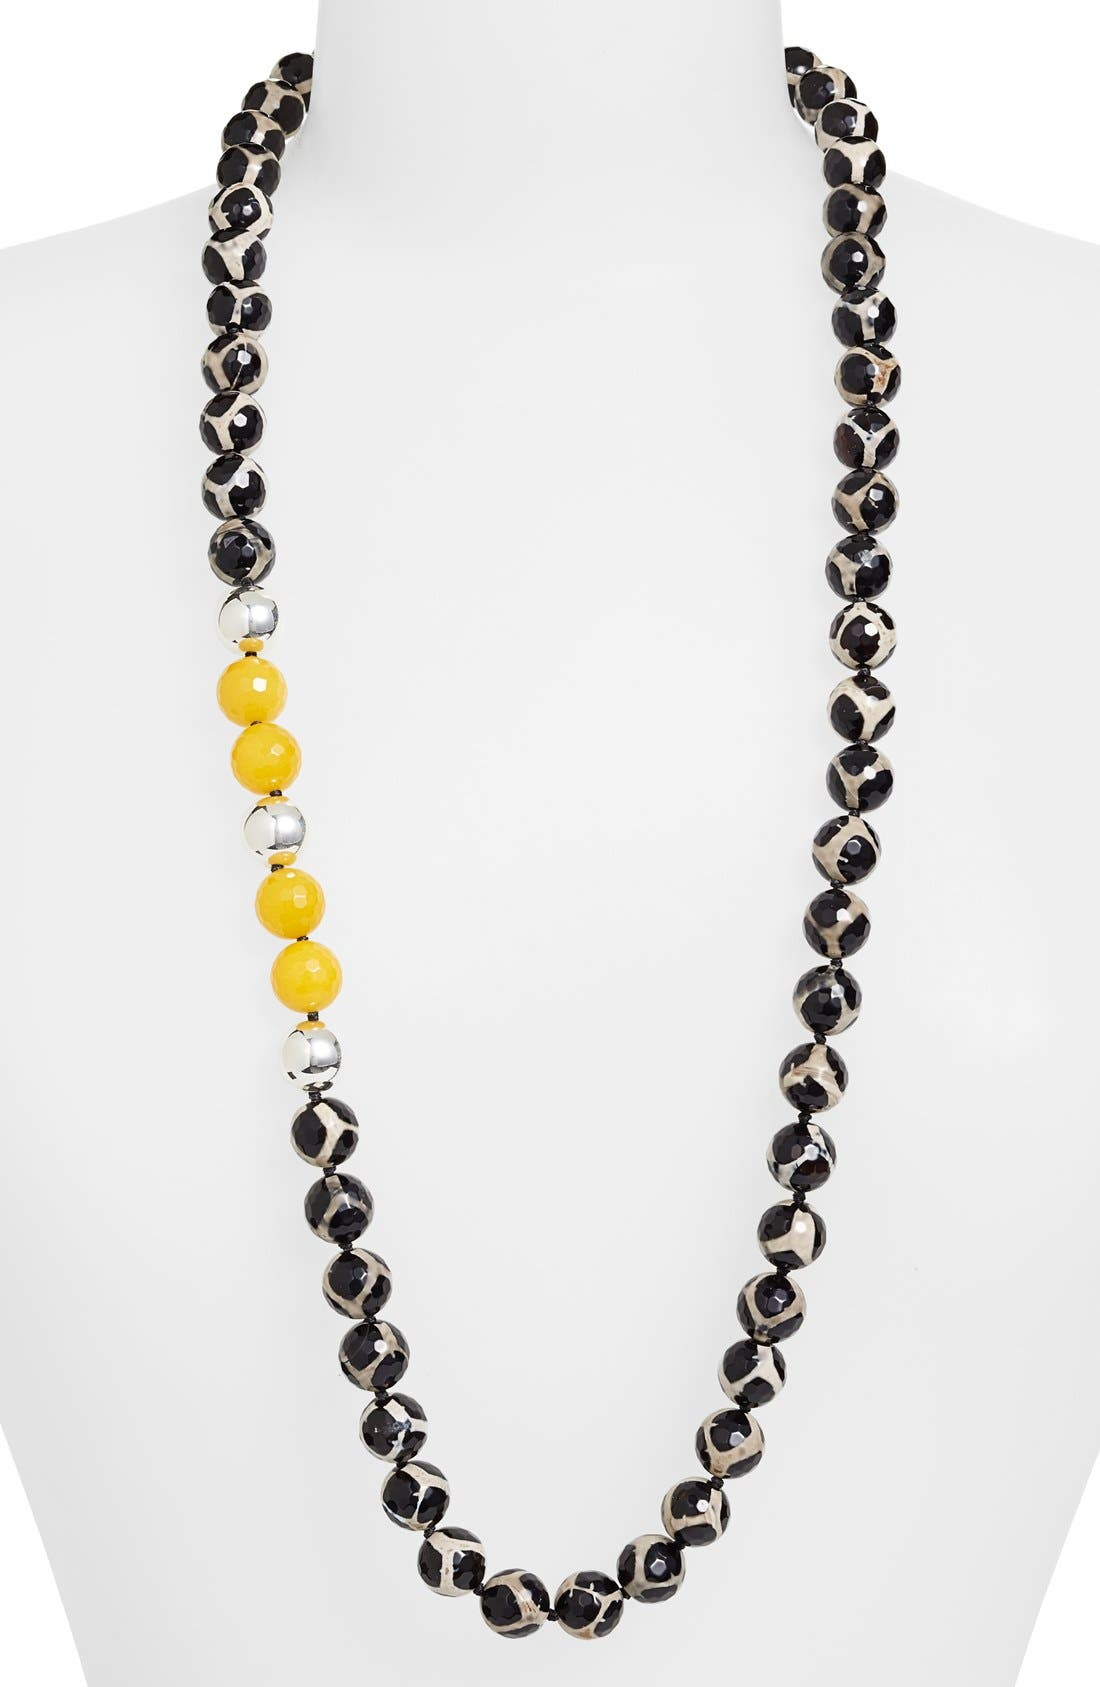 Main Image - Simon Sebbag 'Safari' Long Beaded Necklace